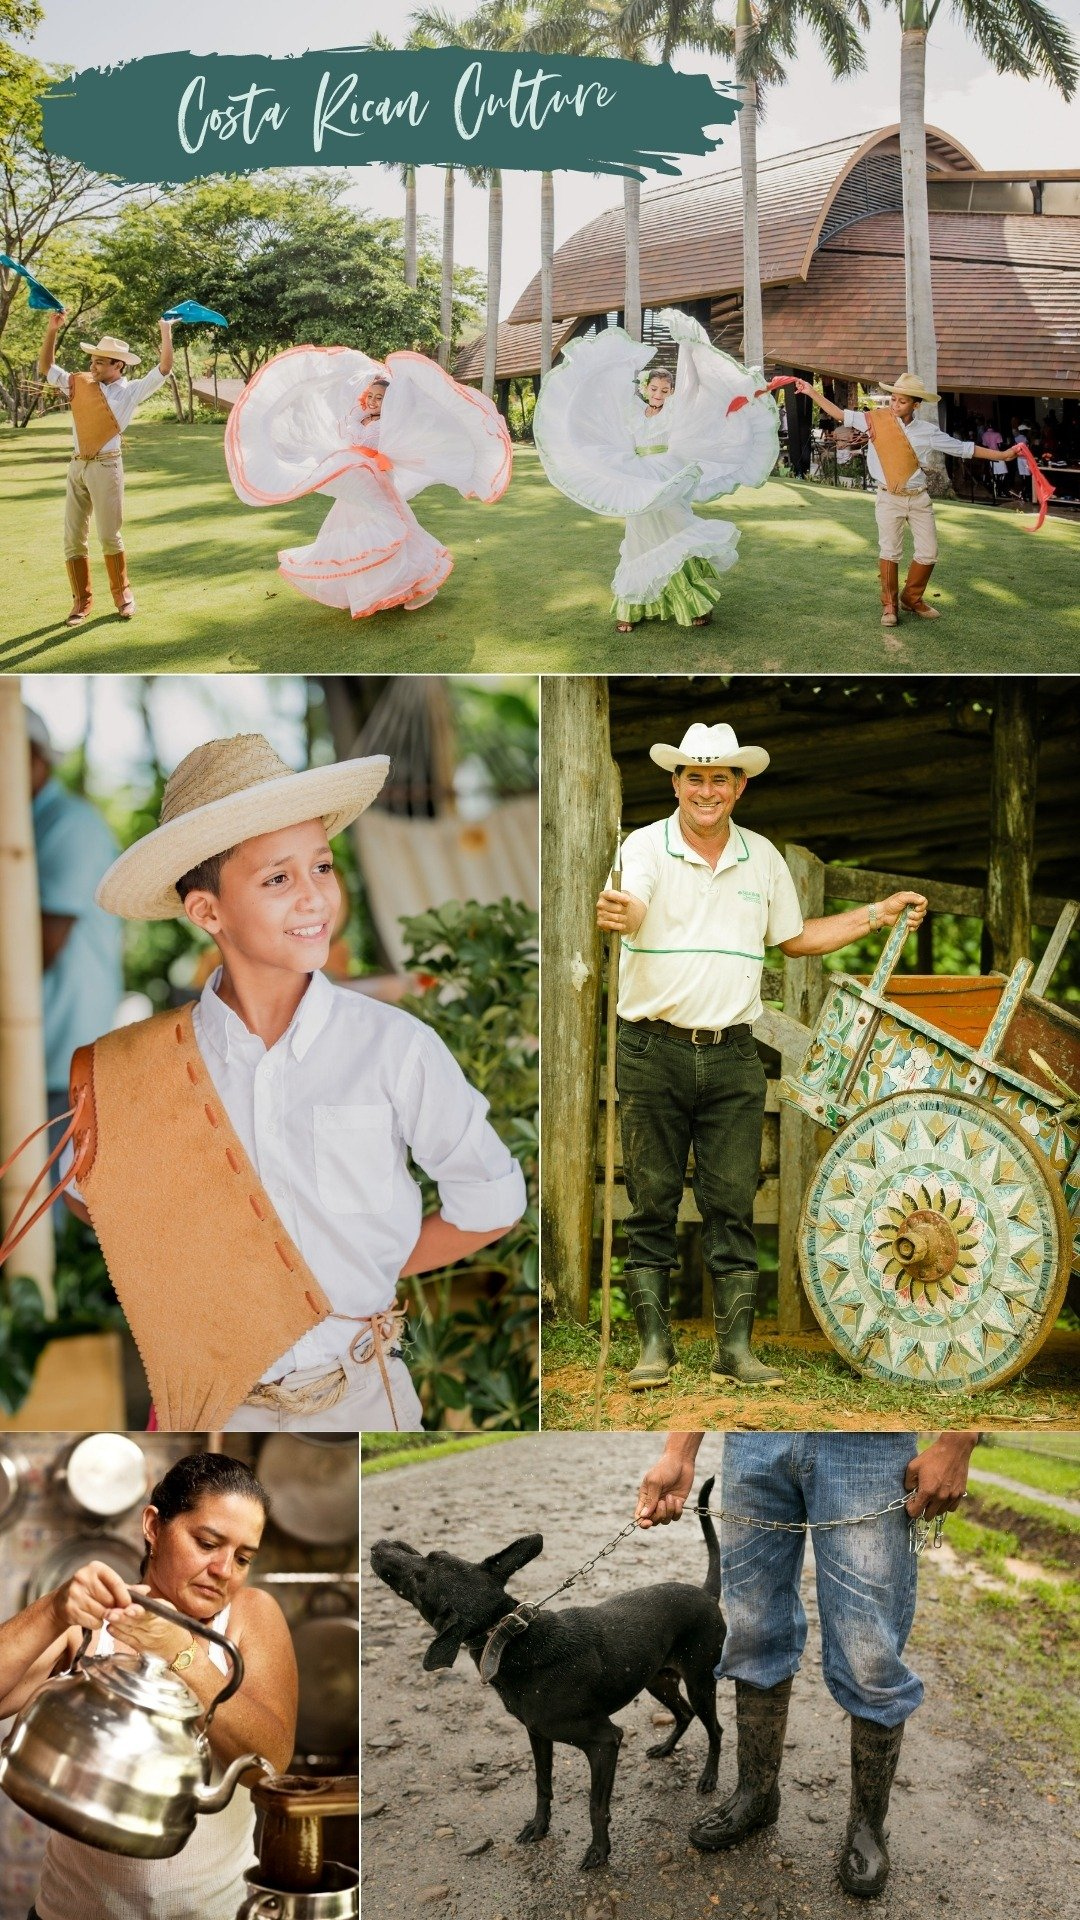 costa rican cultures and traditions